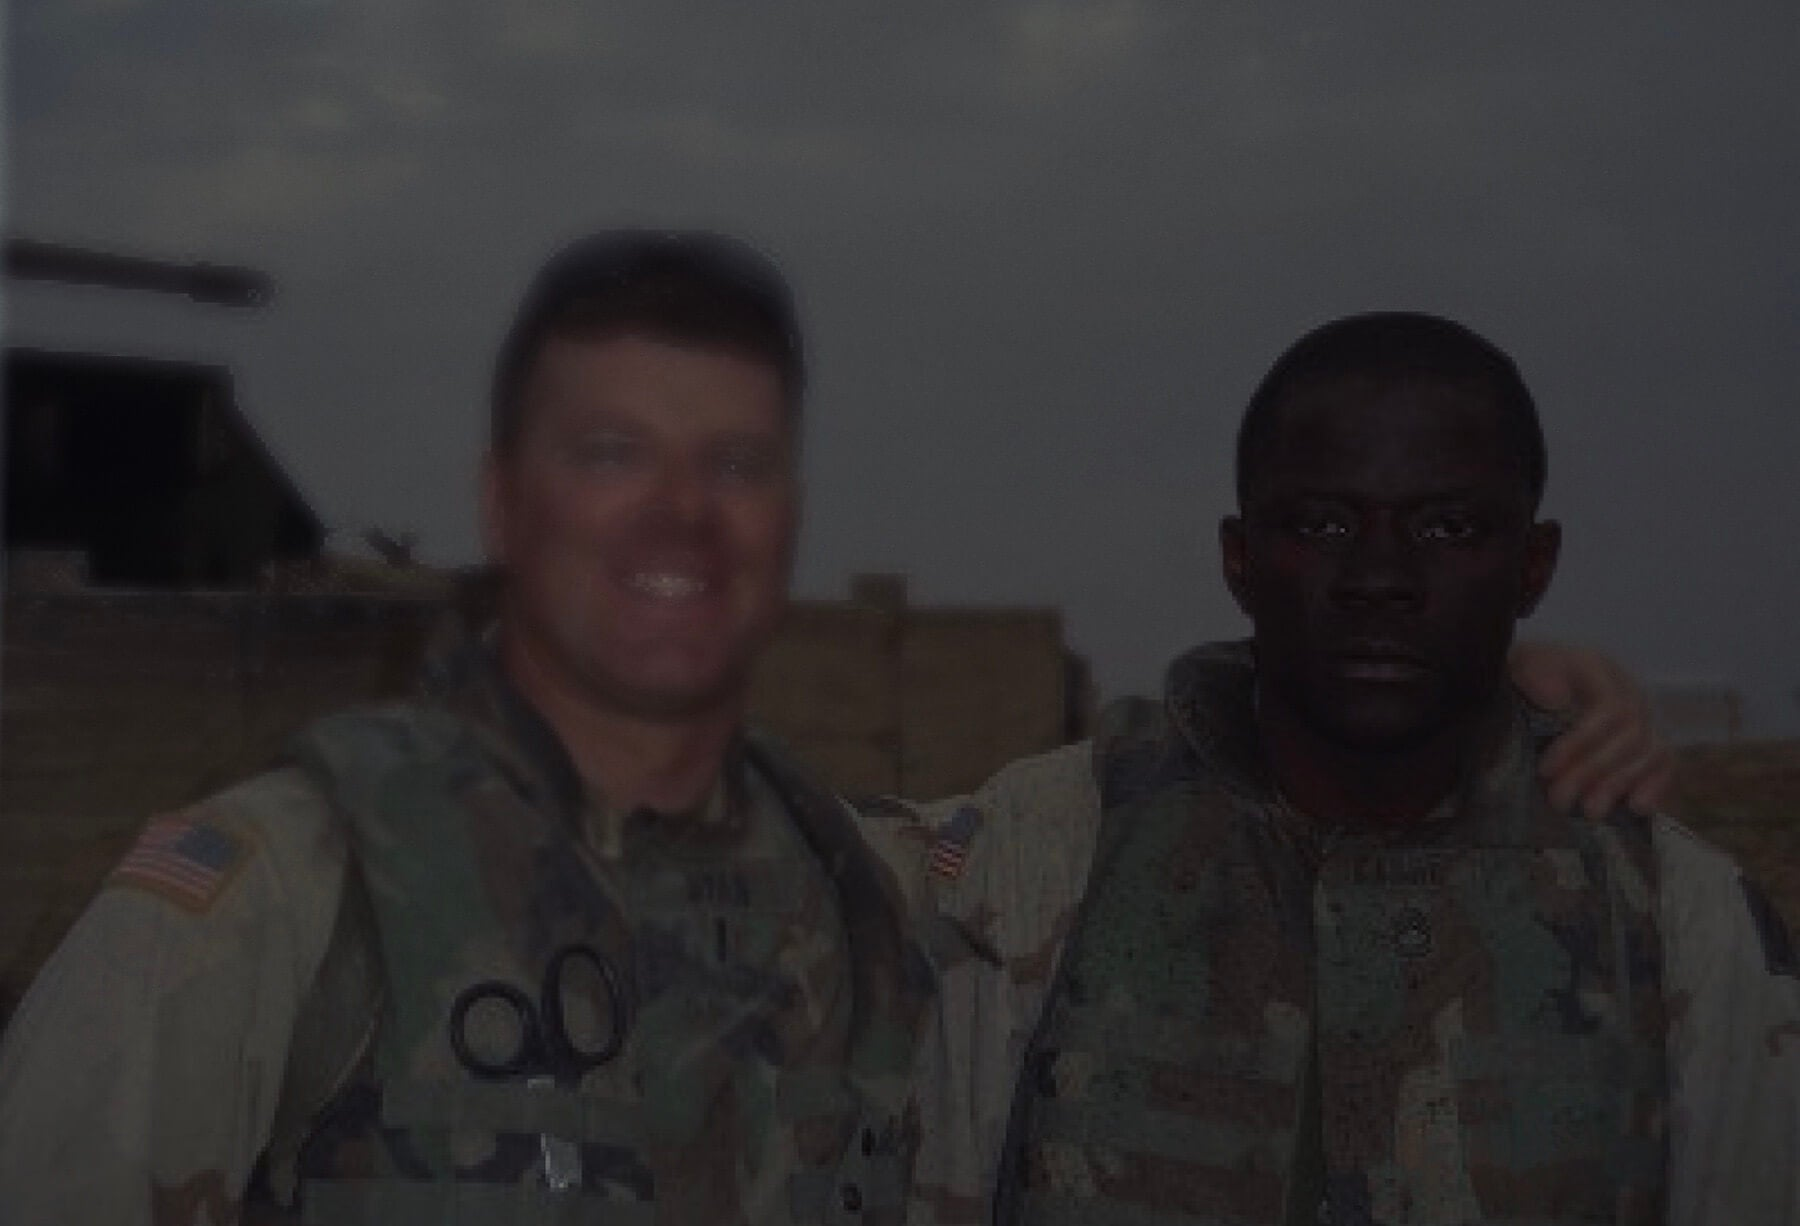 SFC Alwyn Cashe and Lt. James Ryan with black overlay